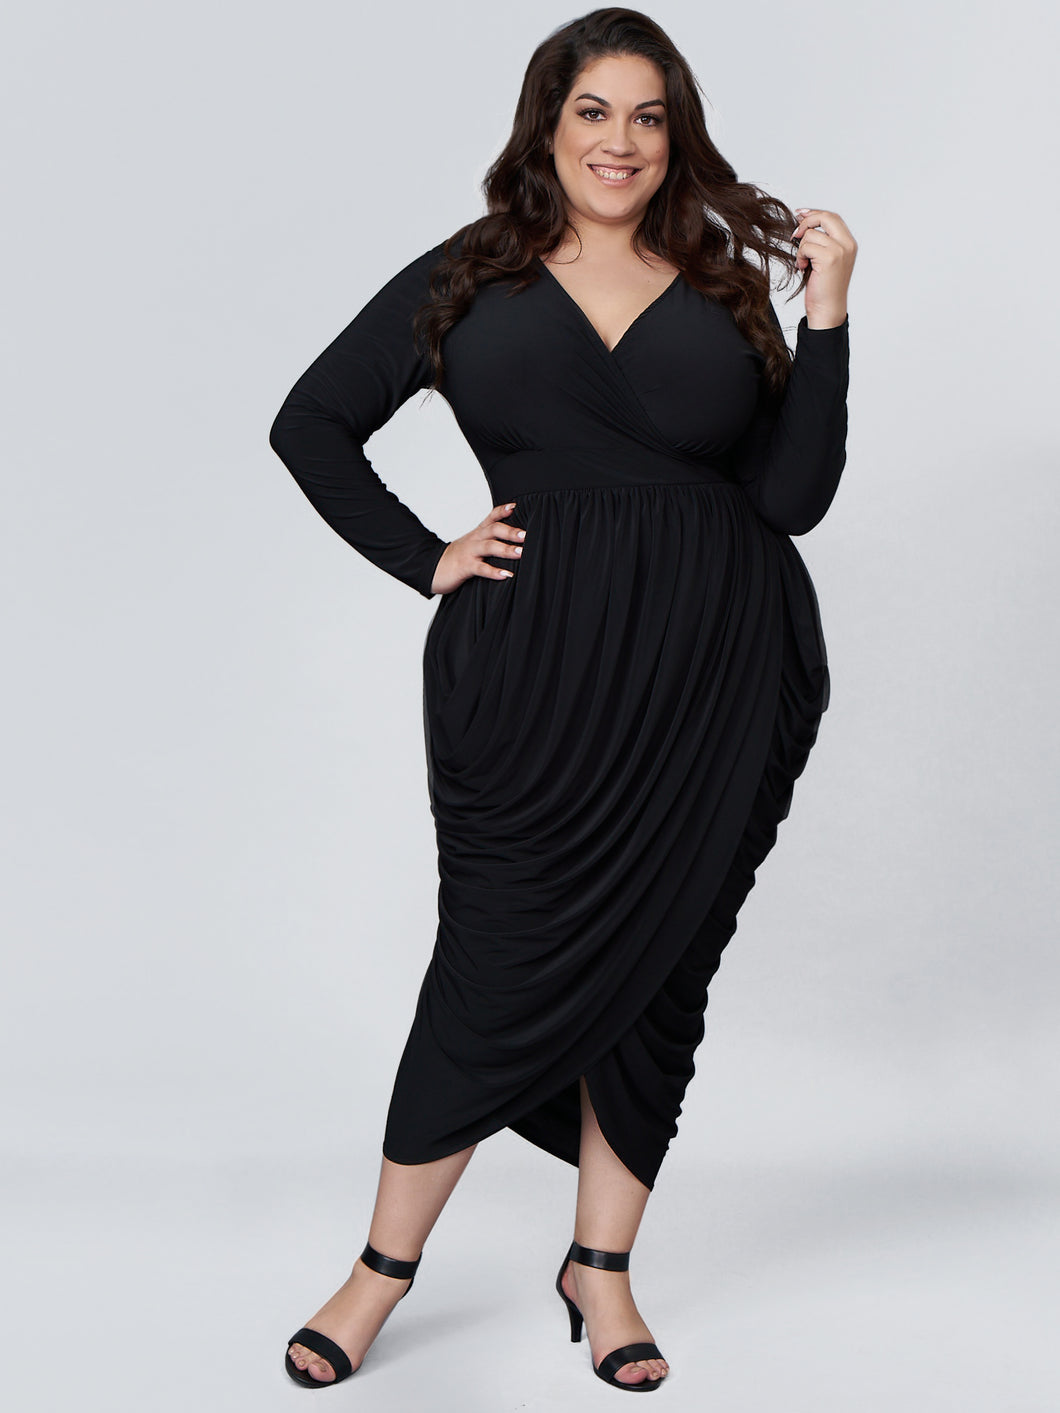 Serena GREAT Ella Long Sleeve Overlap Dress in Black